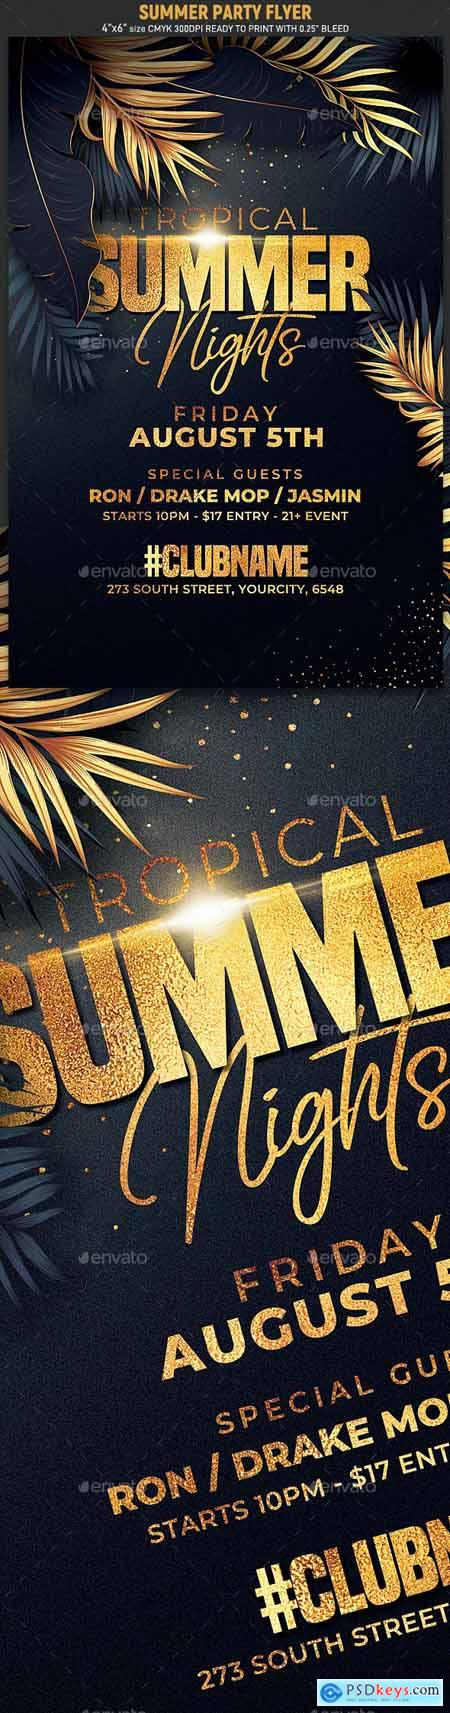 Classy Summer Party Flyer 24121415